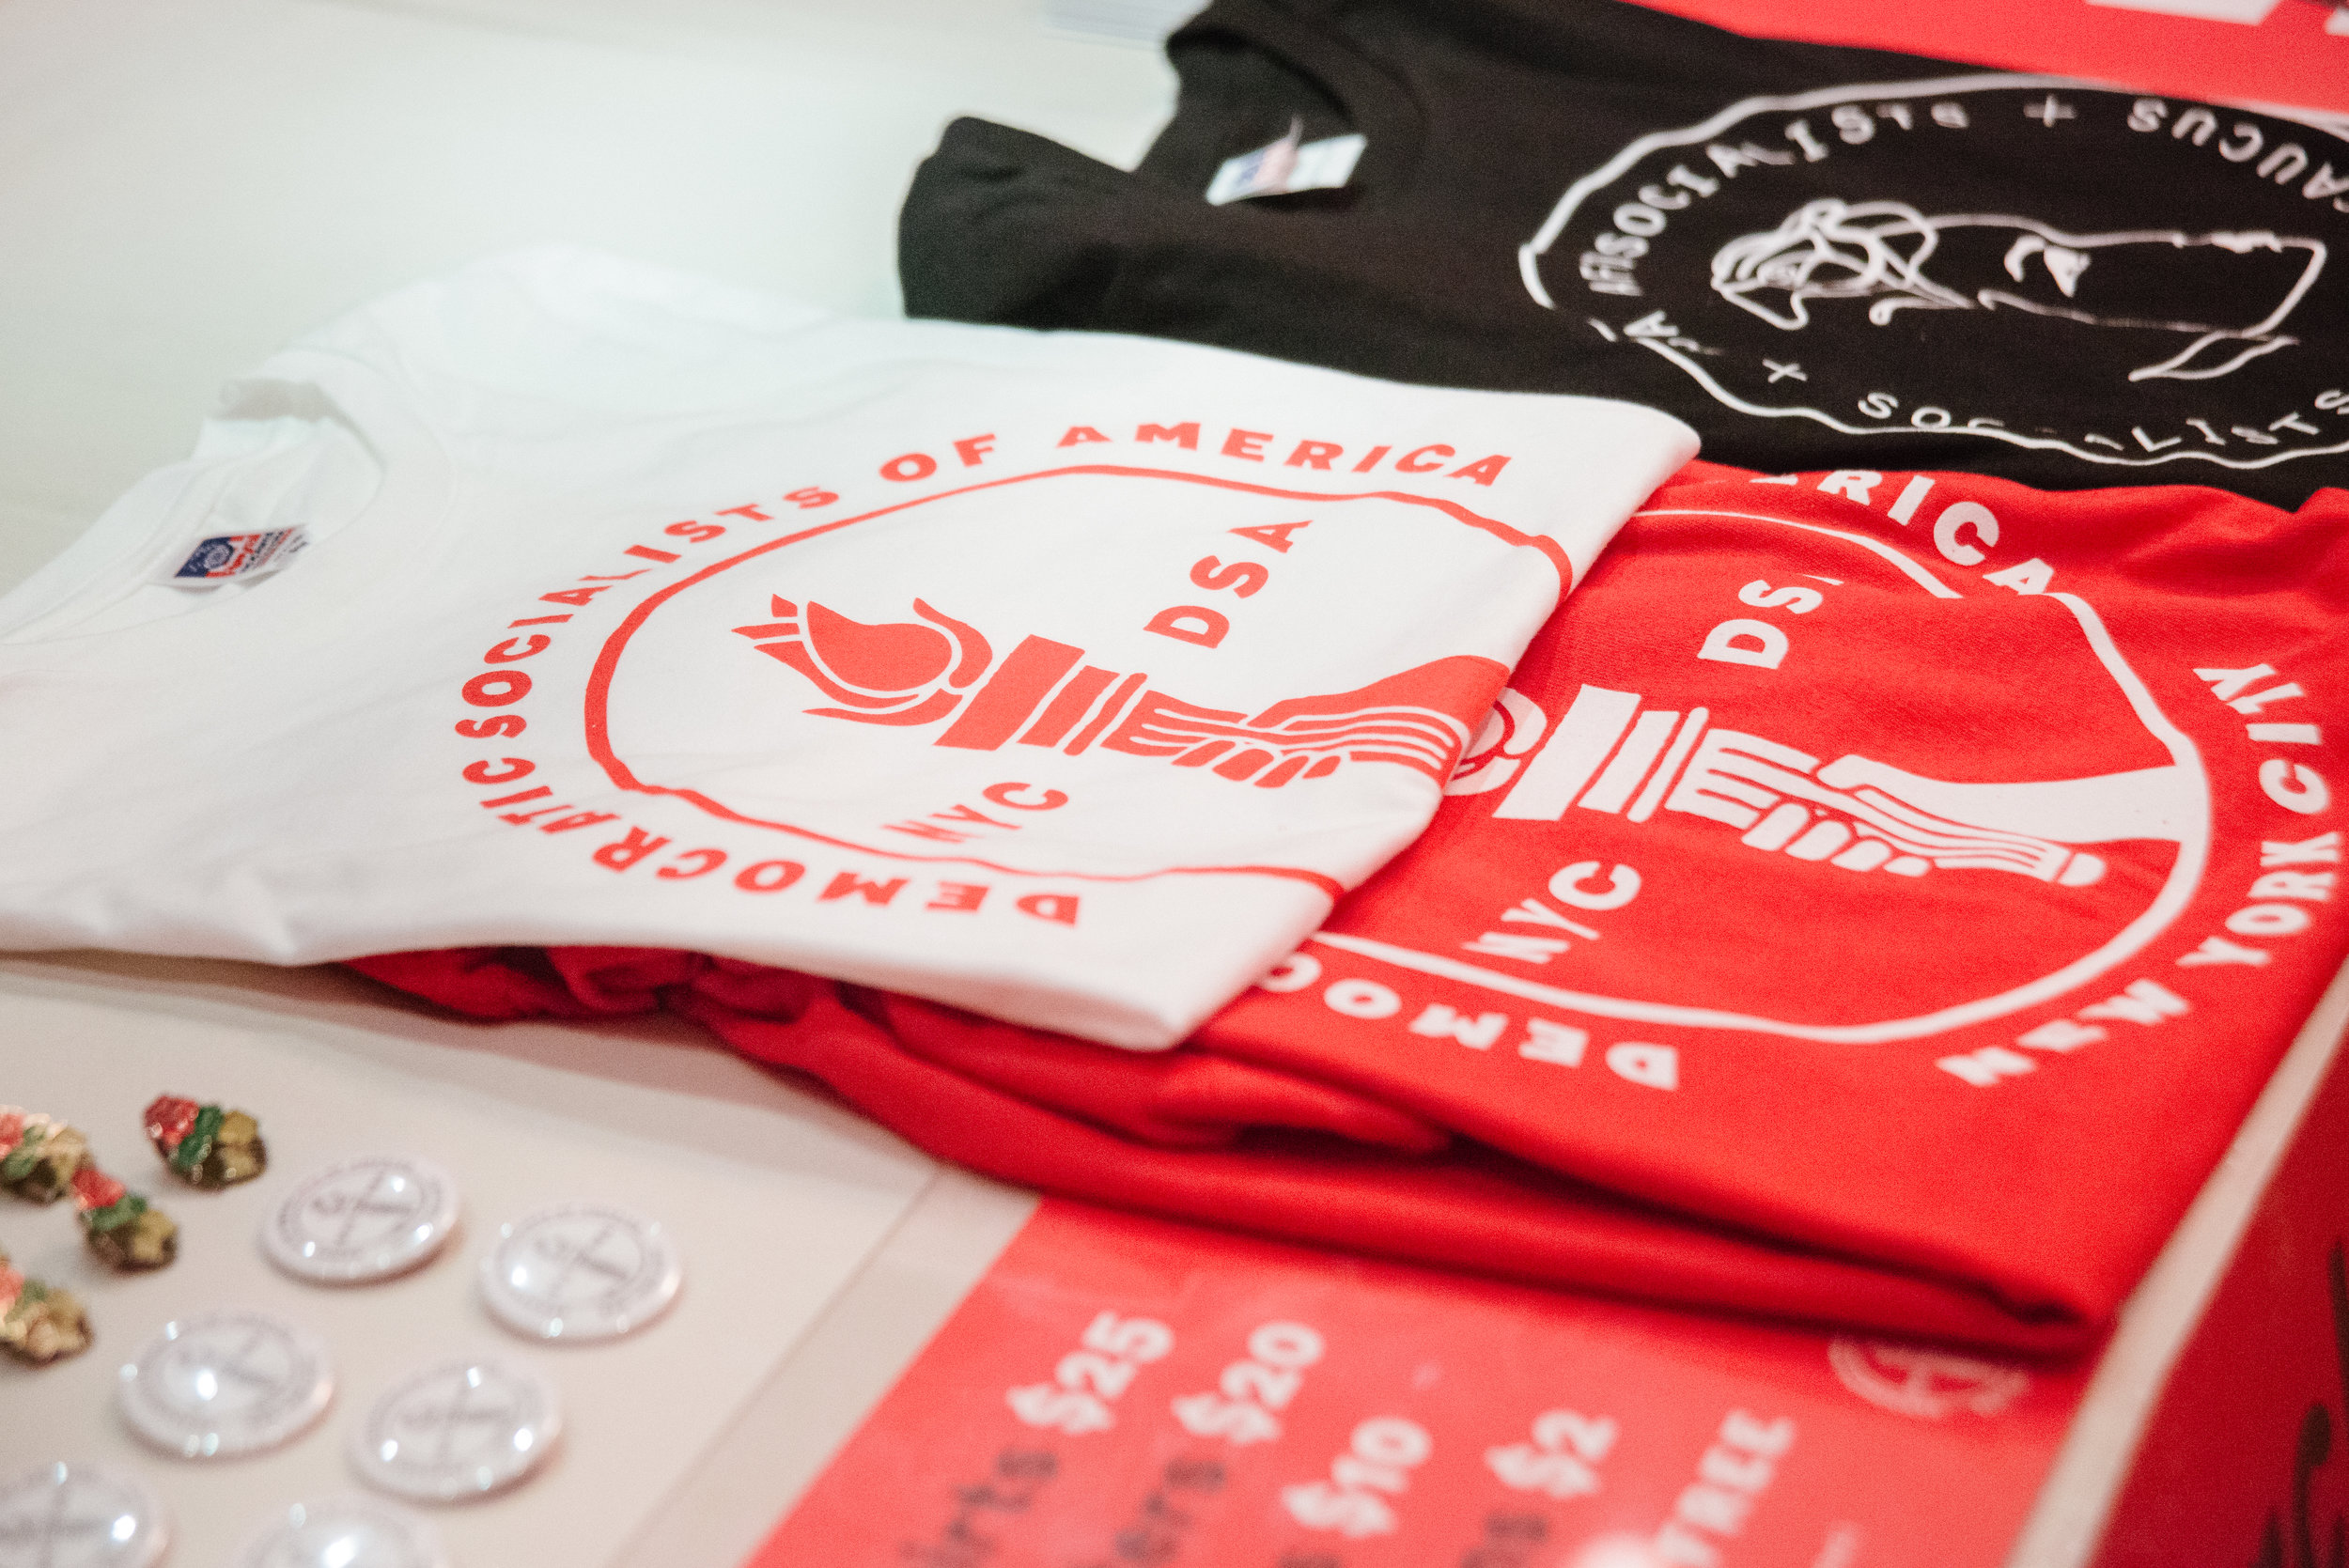 NYC-DSA chapter merchandise